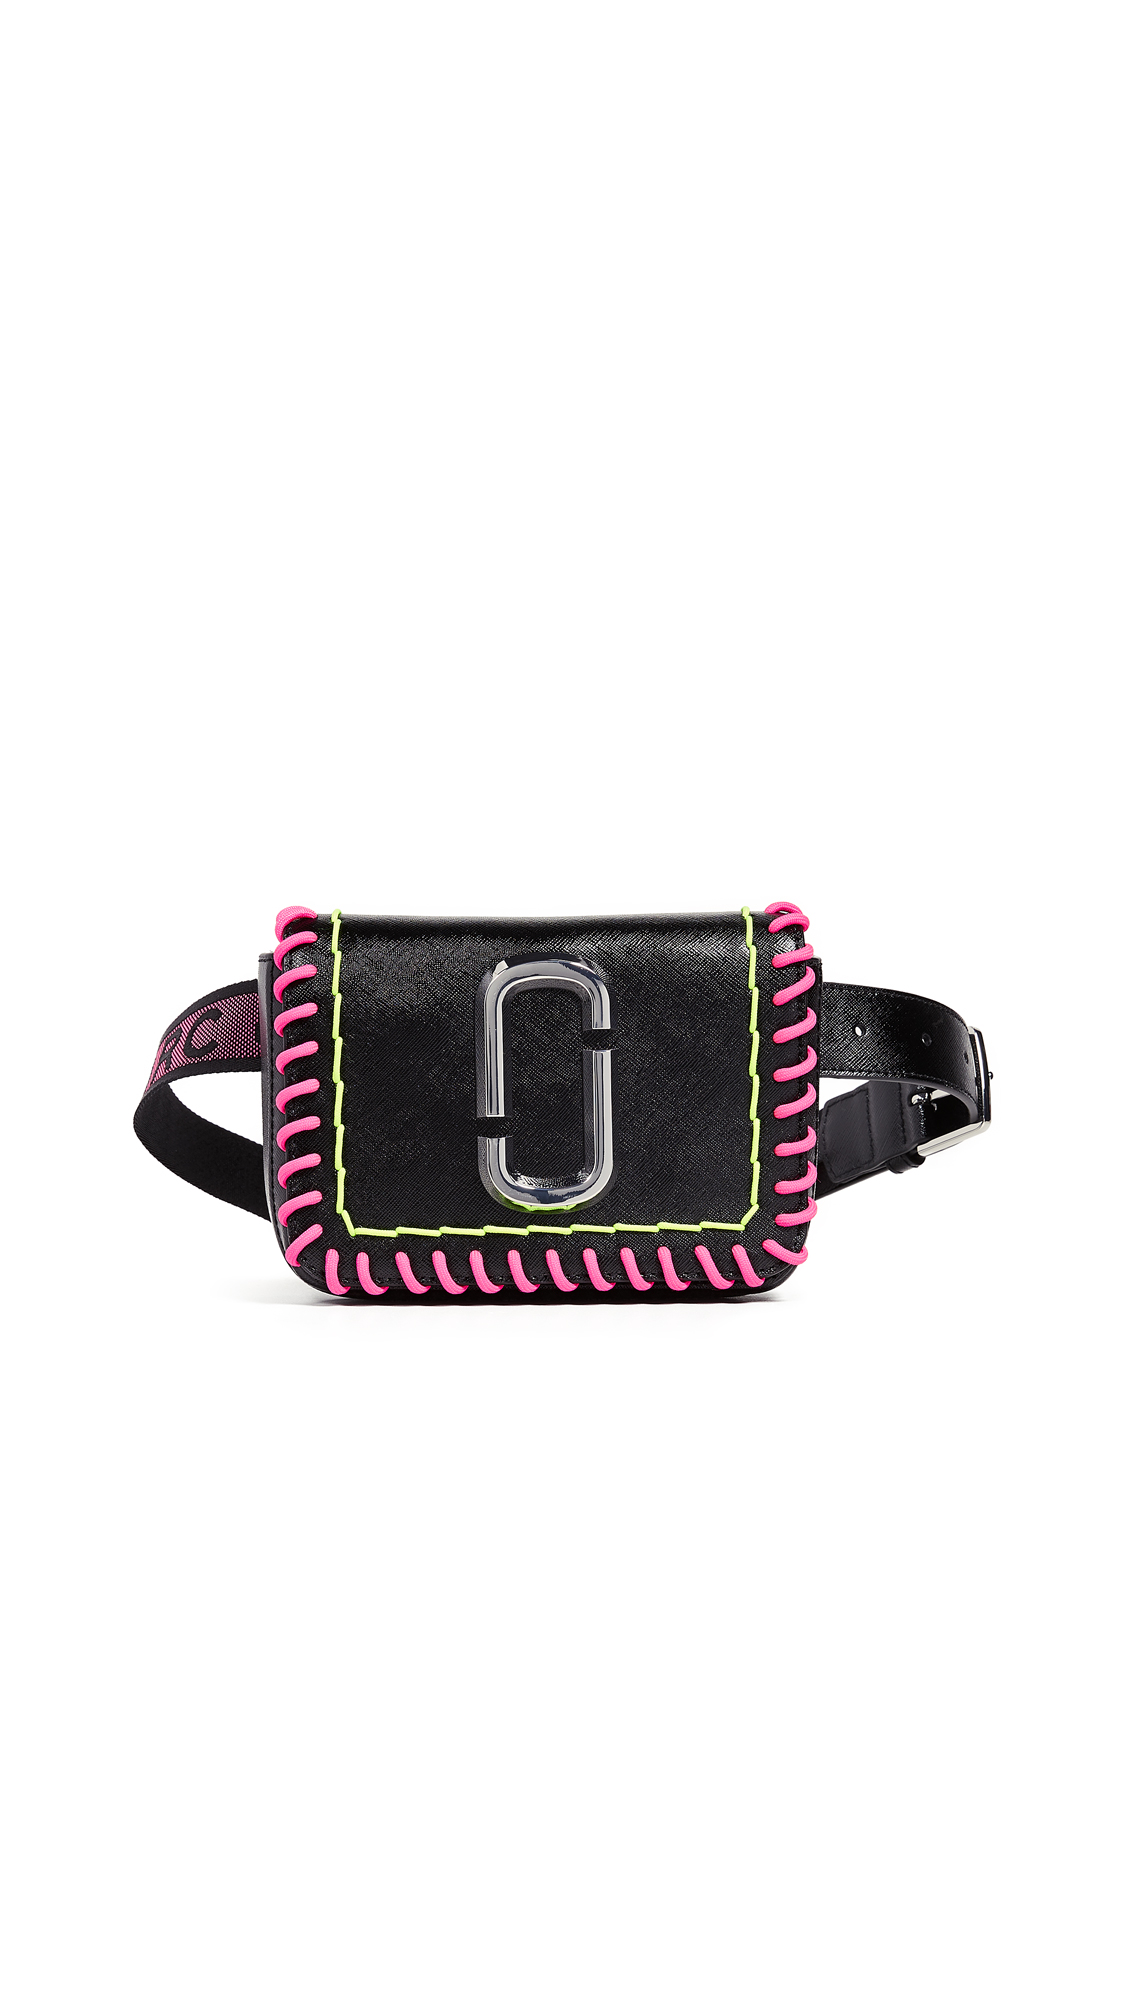 S/M Hip Shot Whipstitch Convertible Belt Bag in Black